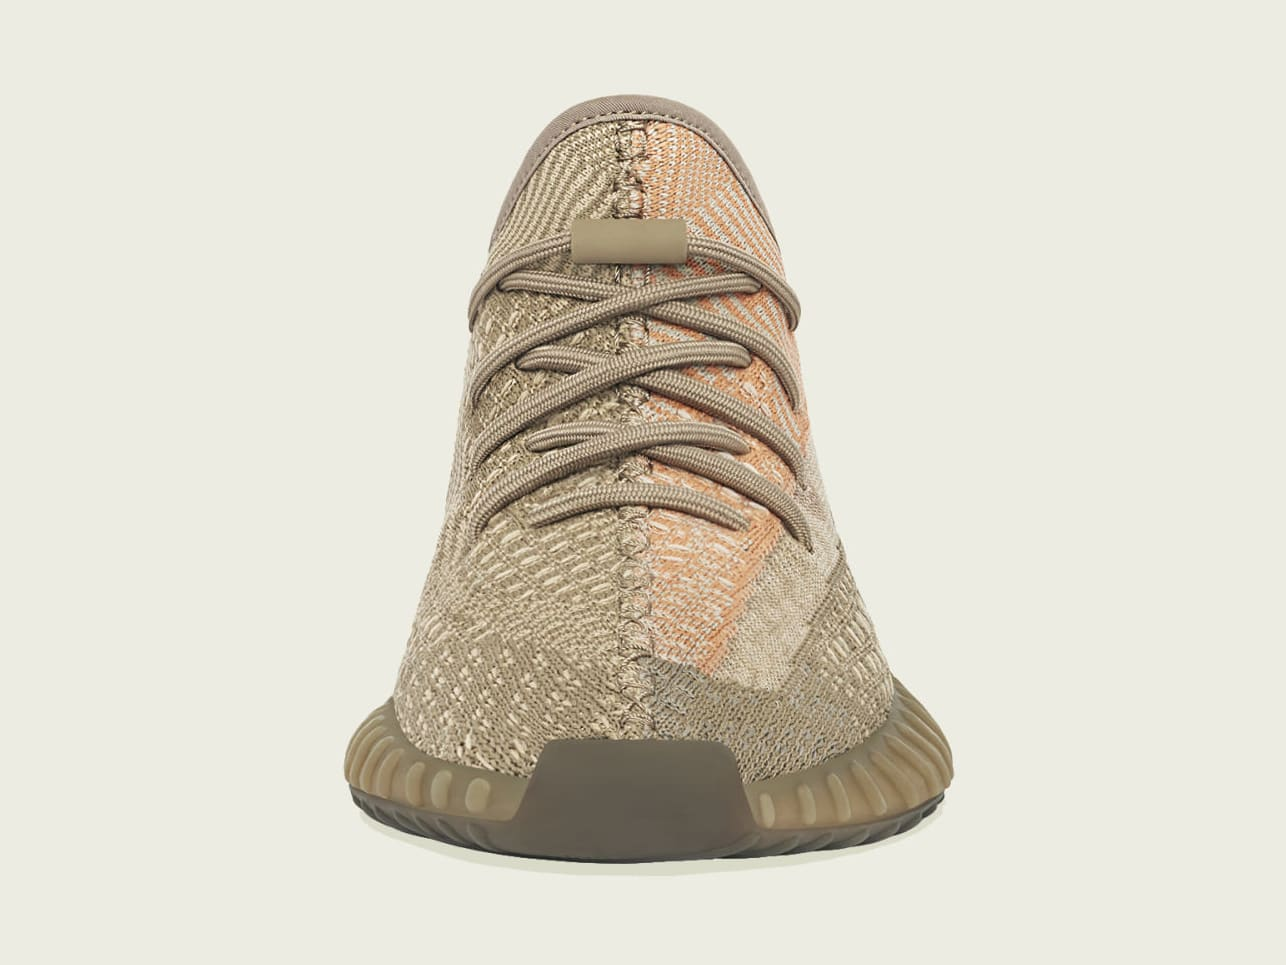 Adidas Yeezy Boost 350 V2 'Sand Taupe' FZ5240 Front